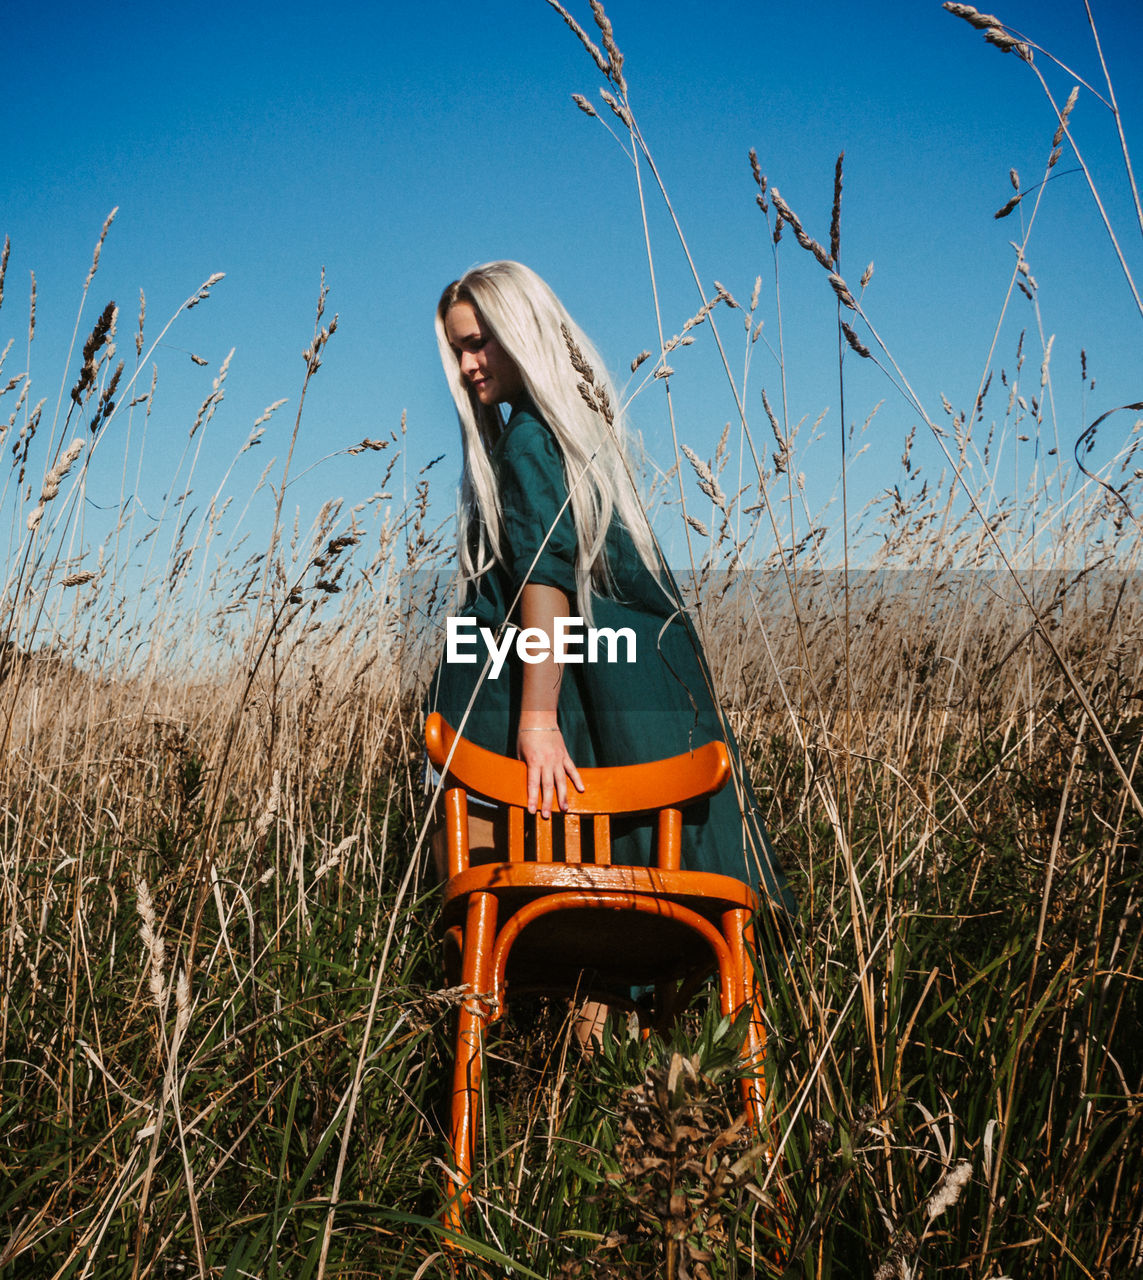 Beautiful woman with chair amidst grass